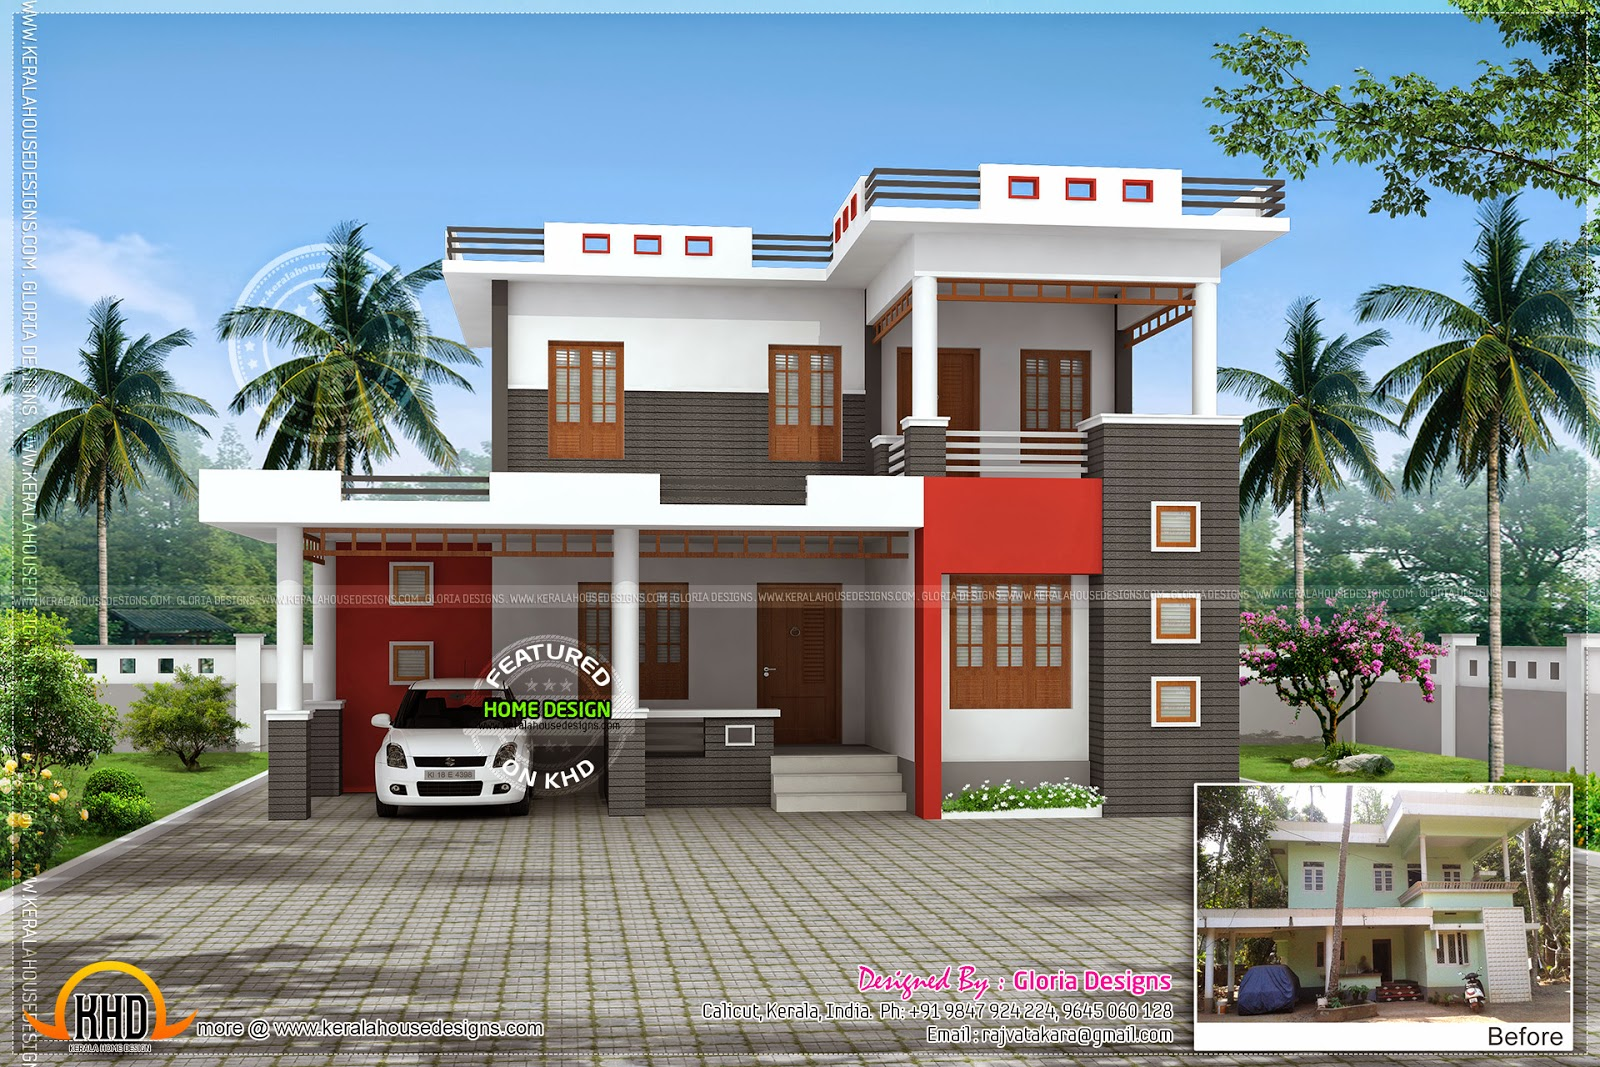 Renovation model for old house. News And Article Online  Renovation 3d model for an old house